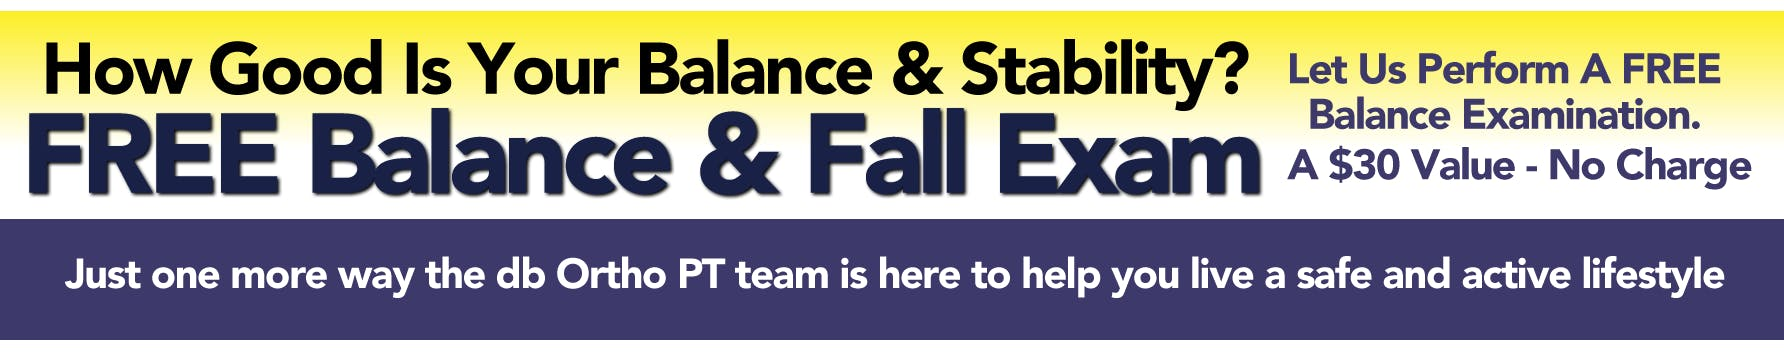 How Good is Your Body Balance & Stability? Let us perform a FREE Balance Examination. A $30 Value - No Charge